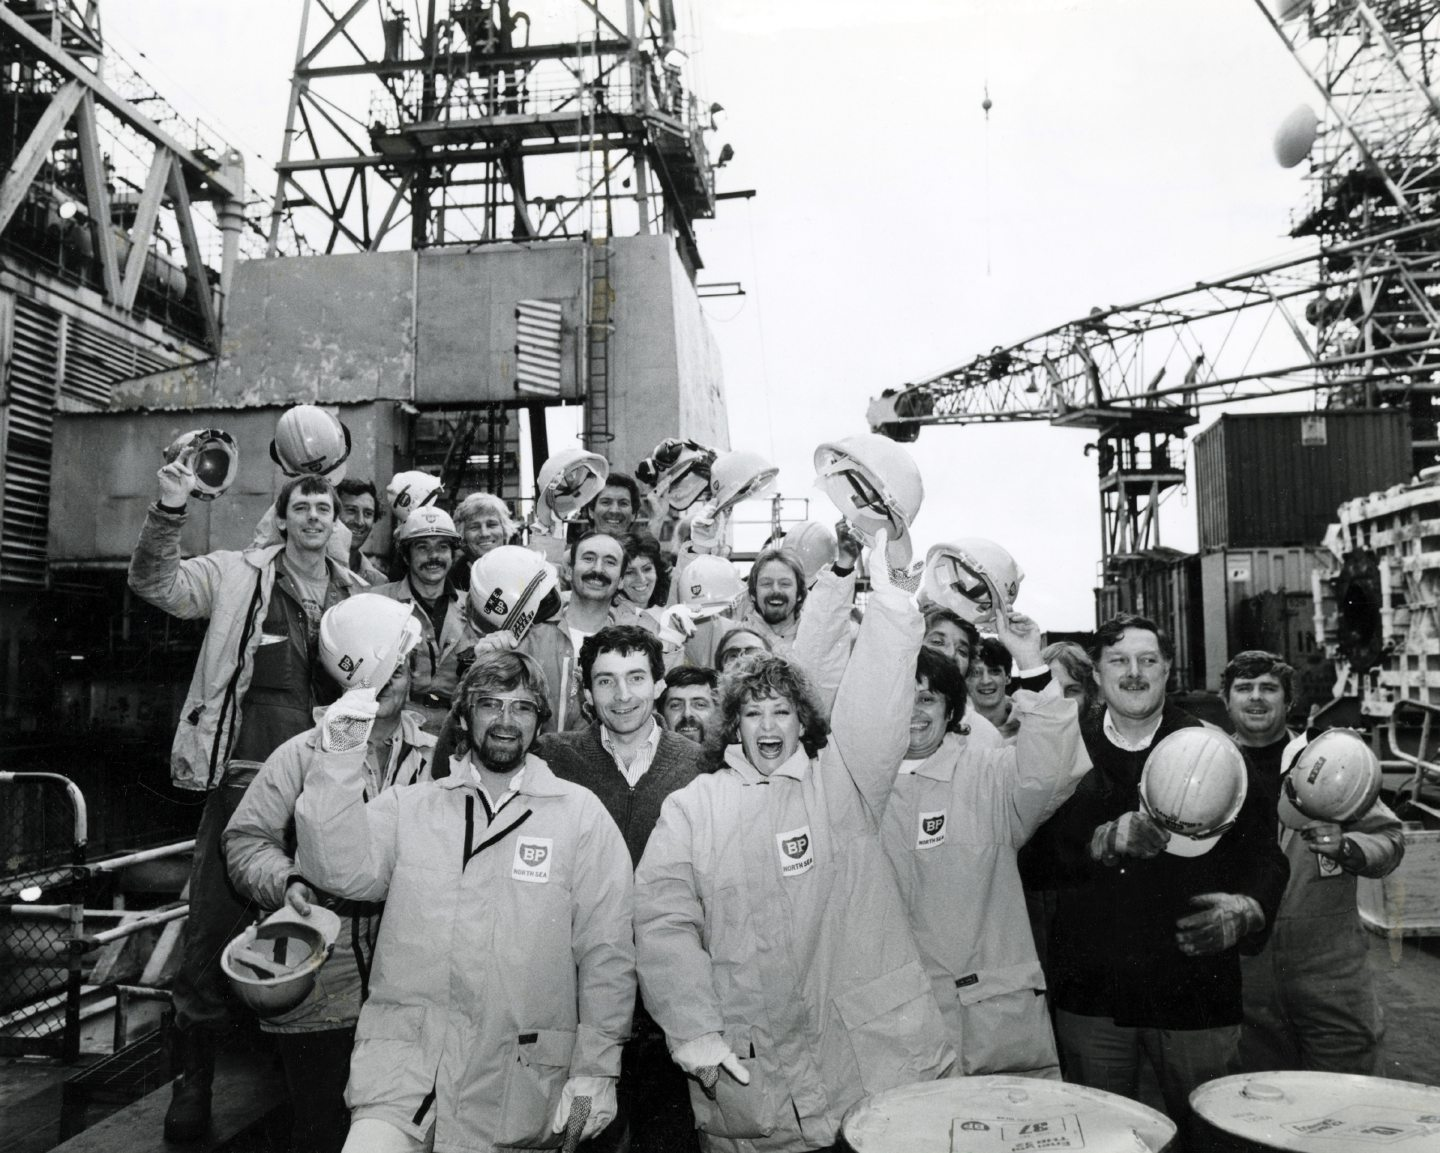 Barbara Dickson and Noel Edmonds visited an oil rig in the 1980s.